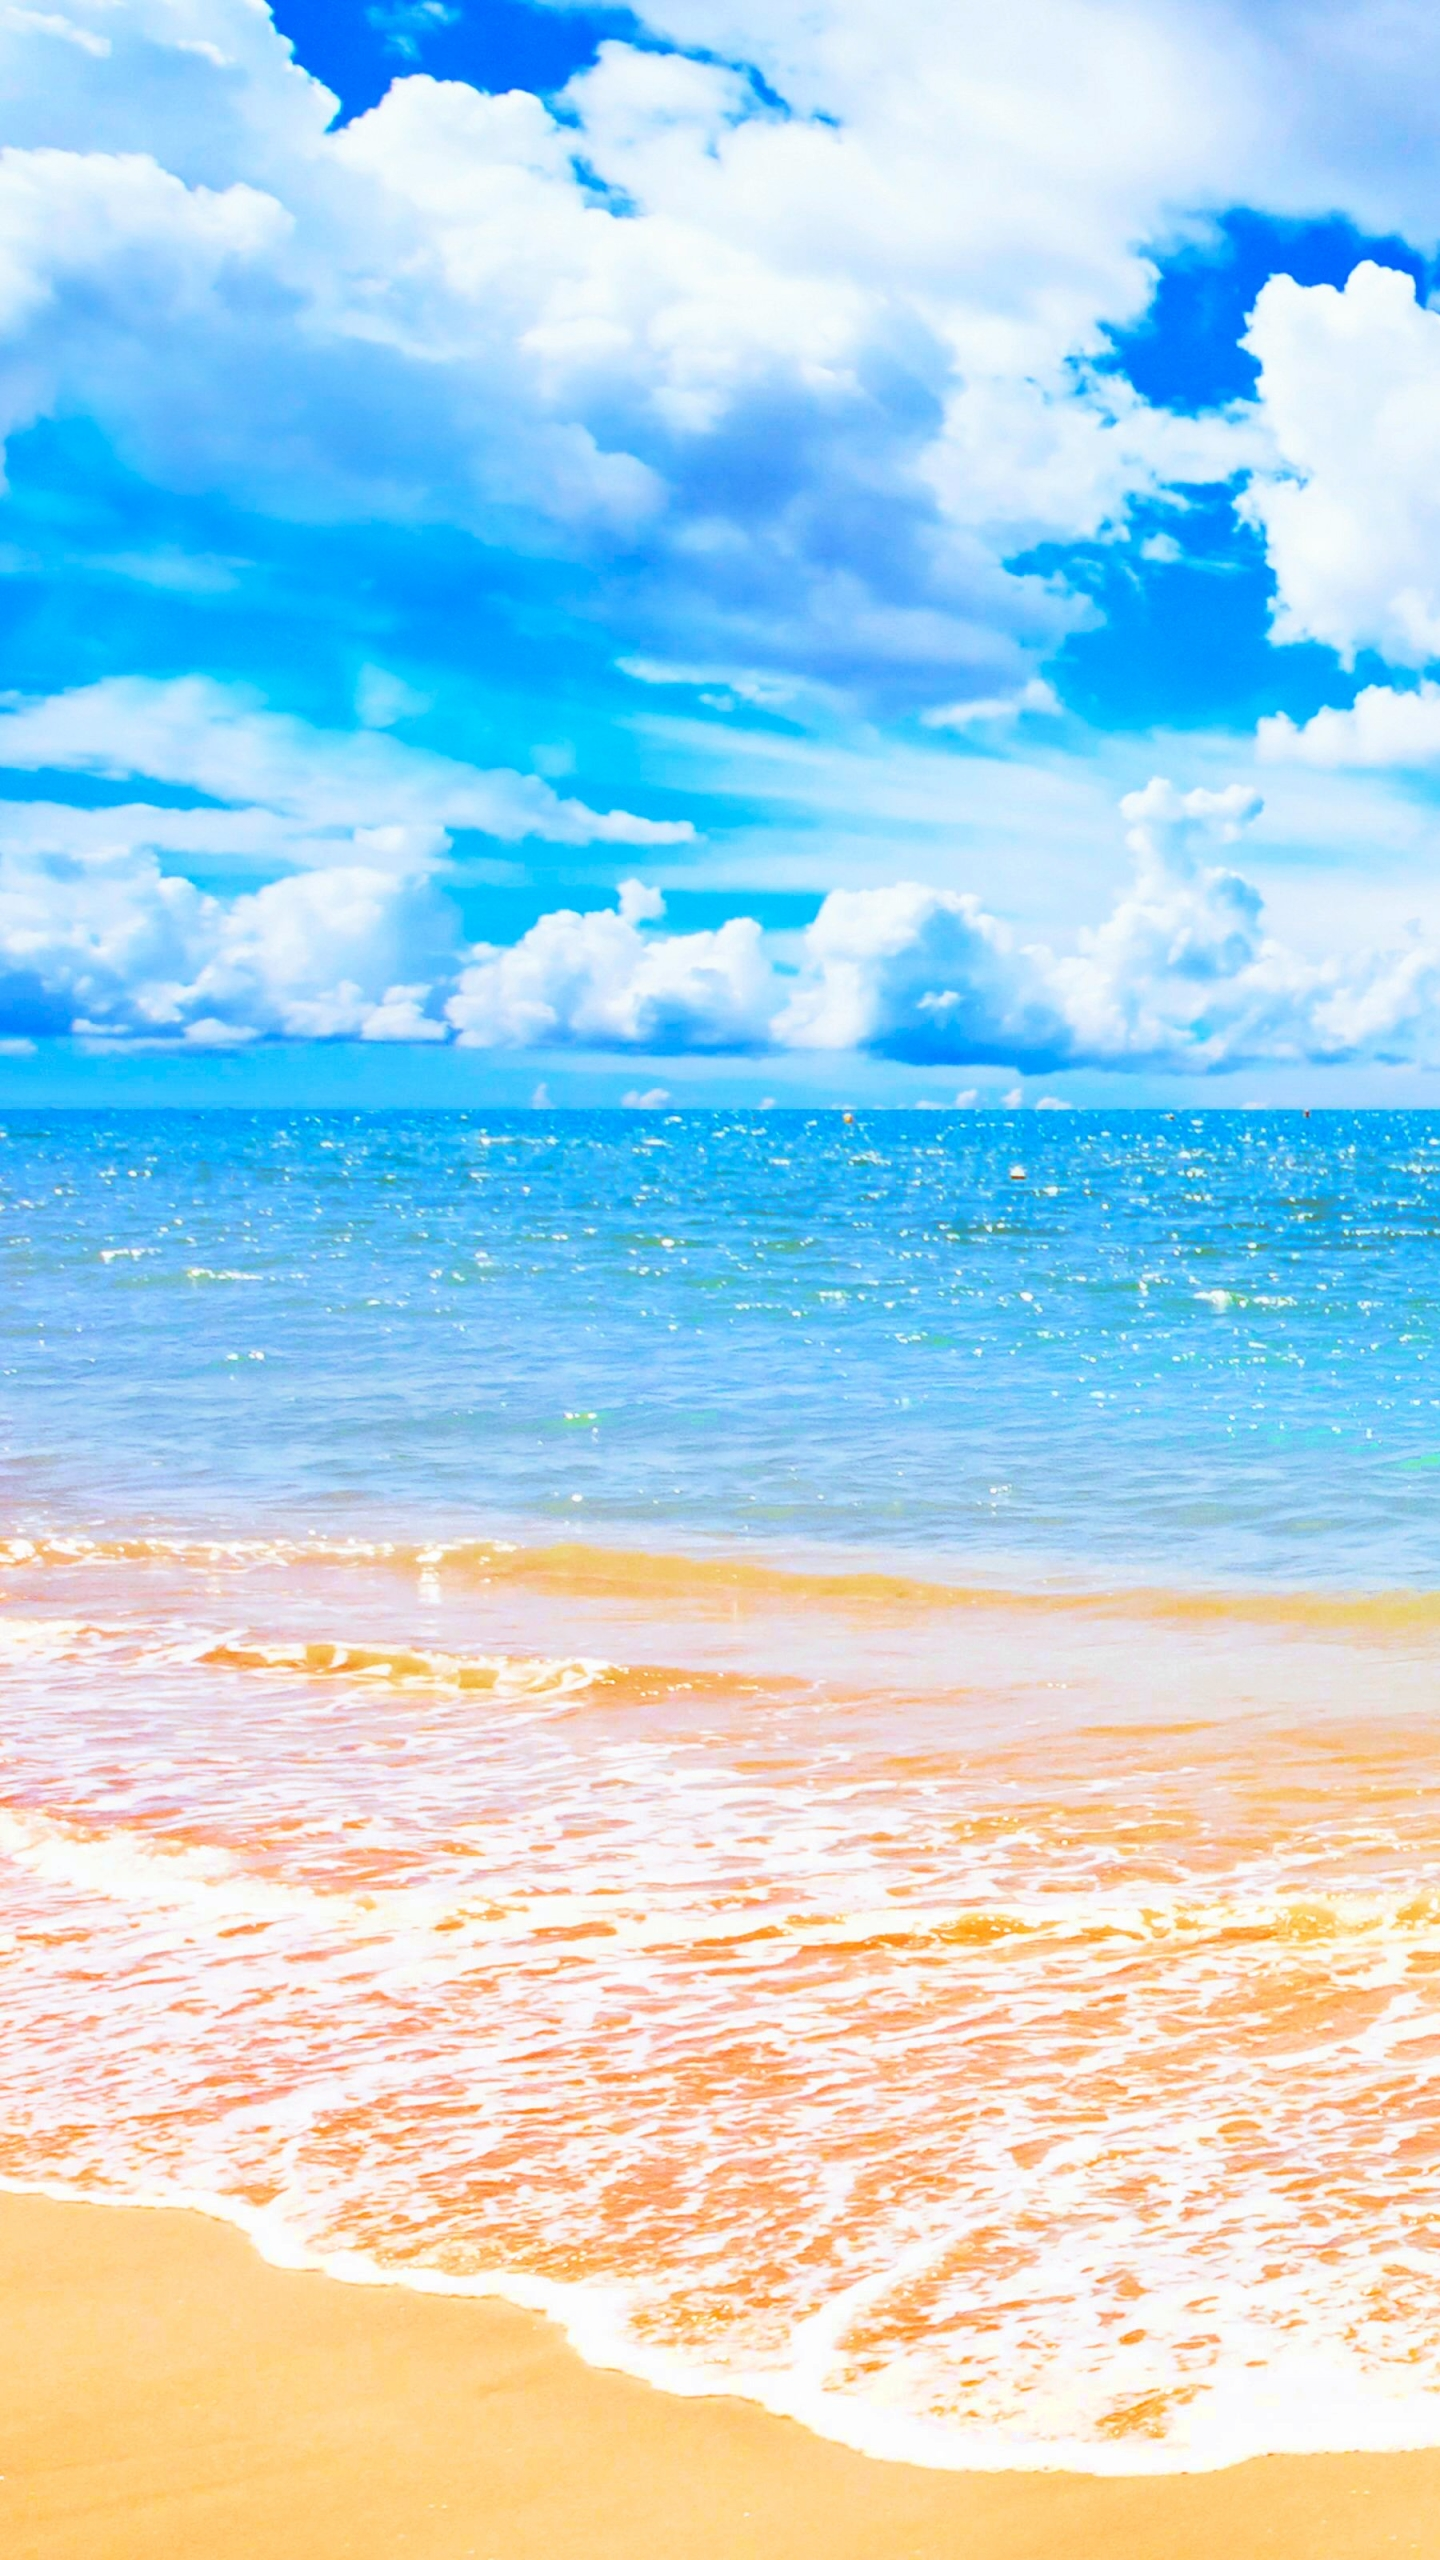 Wallpaper Of The Beach Posted By John Mercado